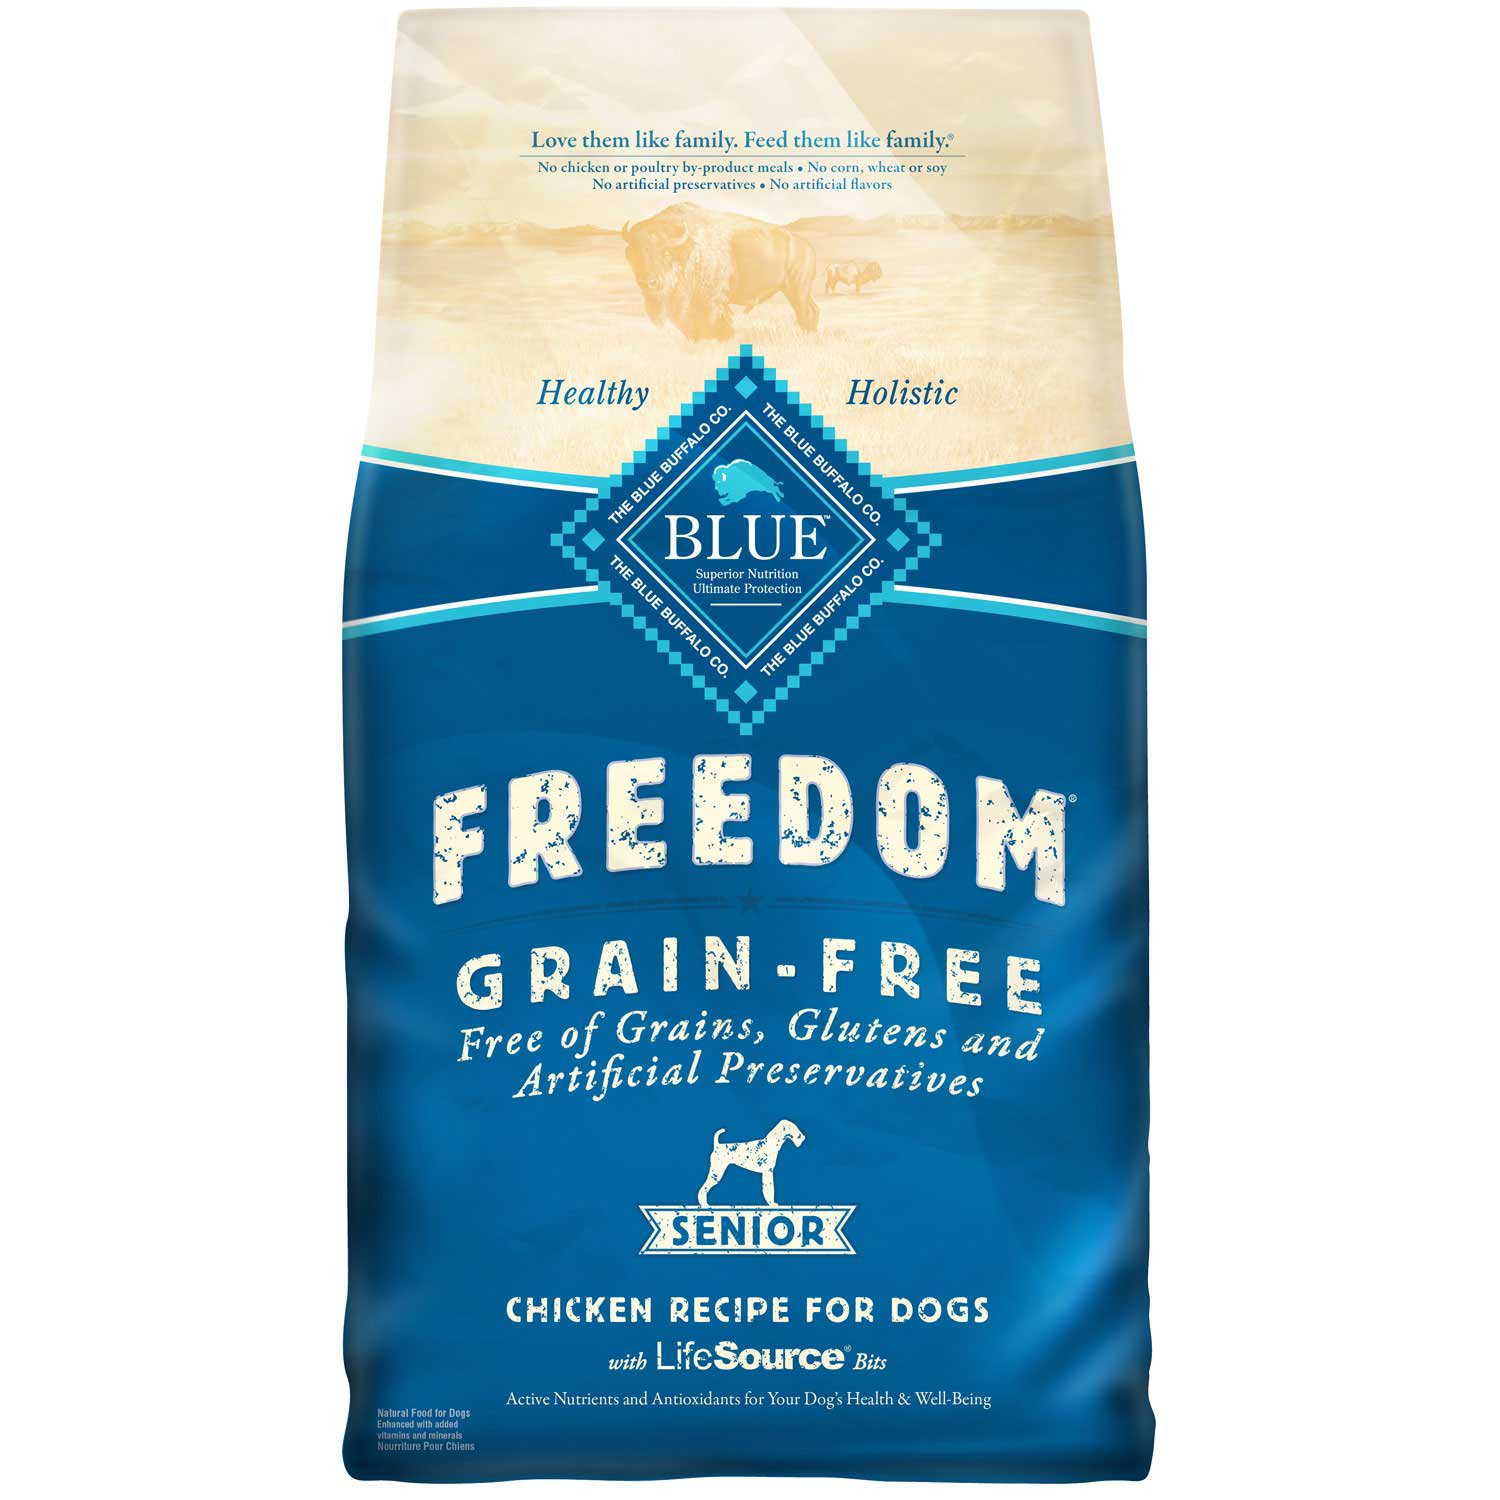 Blue Buffalo dry dog food is natural, healthy, and HOLISTIC. Made with only REAL MEAT and the finest NATURAL INGREDIENTS: Garden veggies and fruit along with .